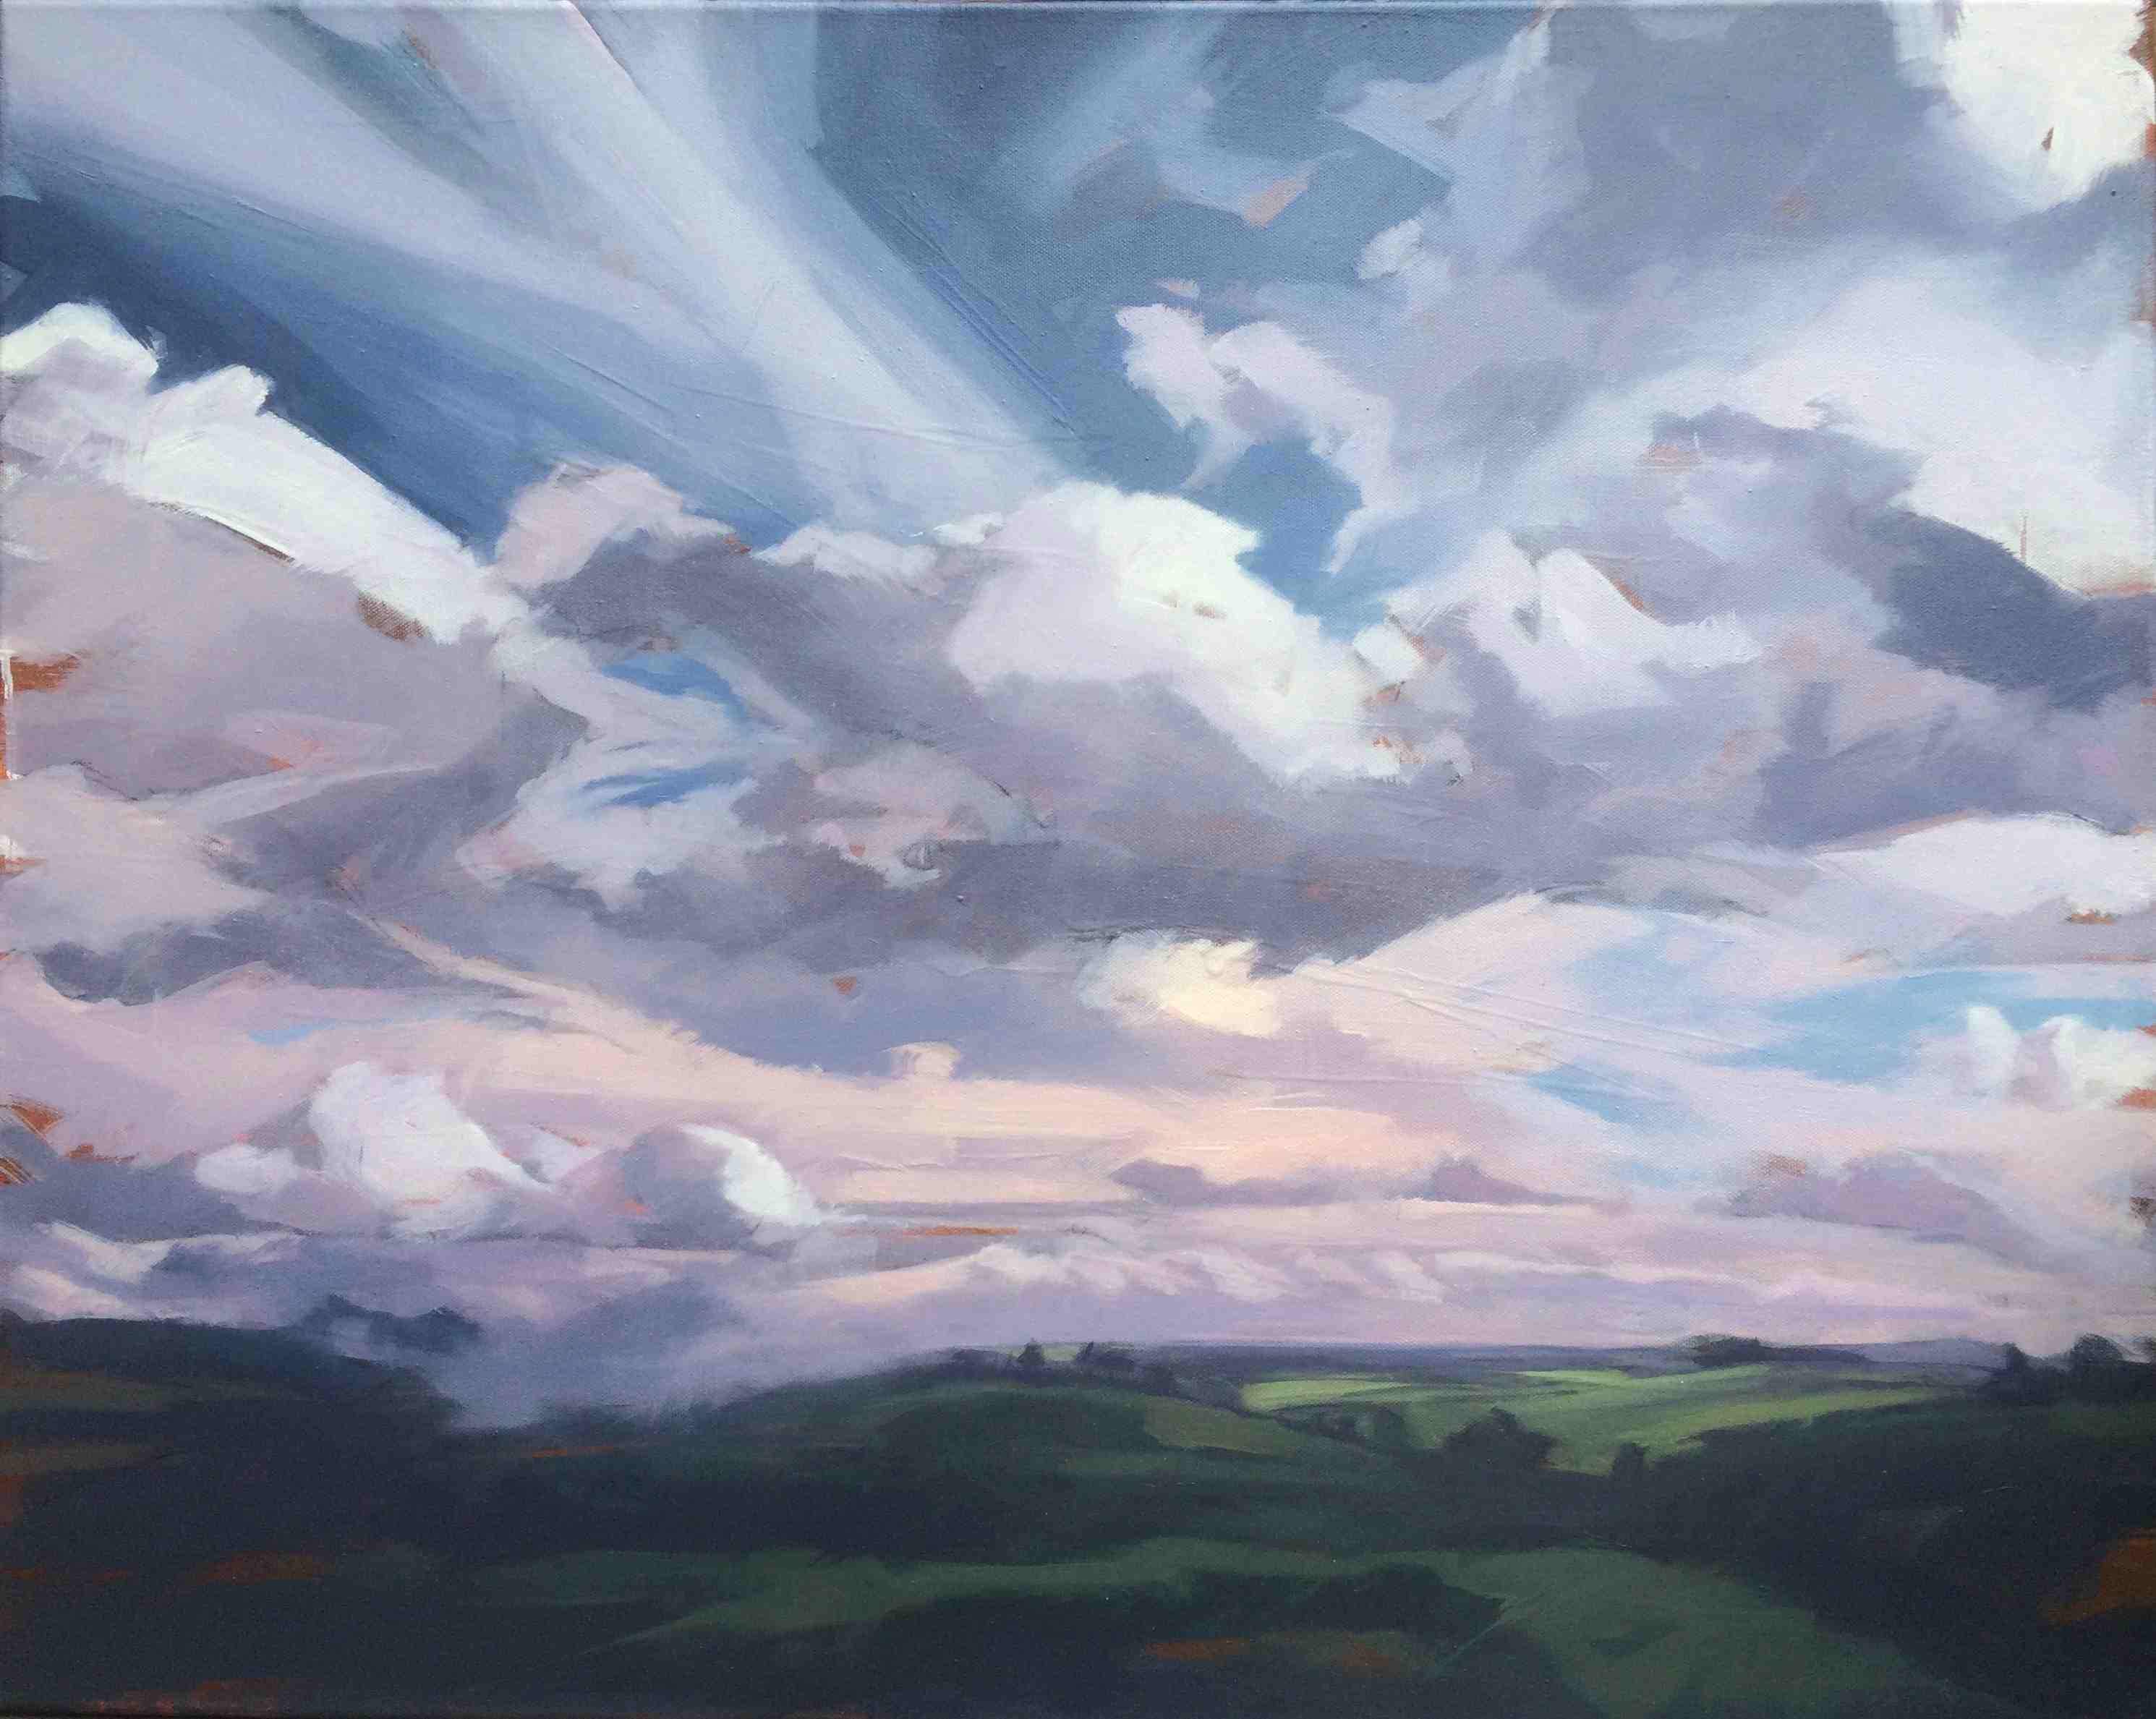 Tracey Quinn, Clouds Fields Summer, oil on canvas, 61 x 76 cm